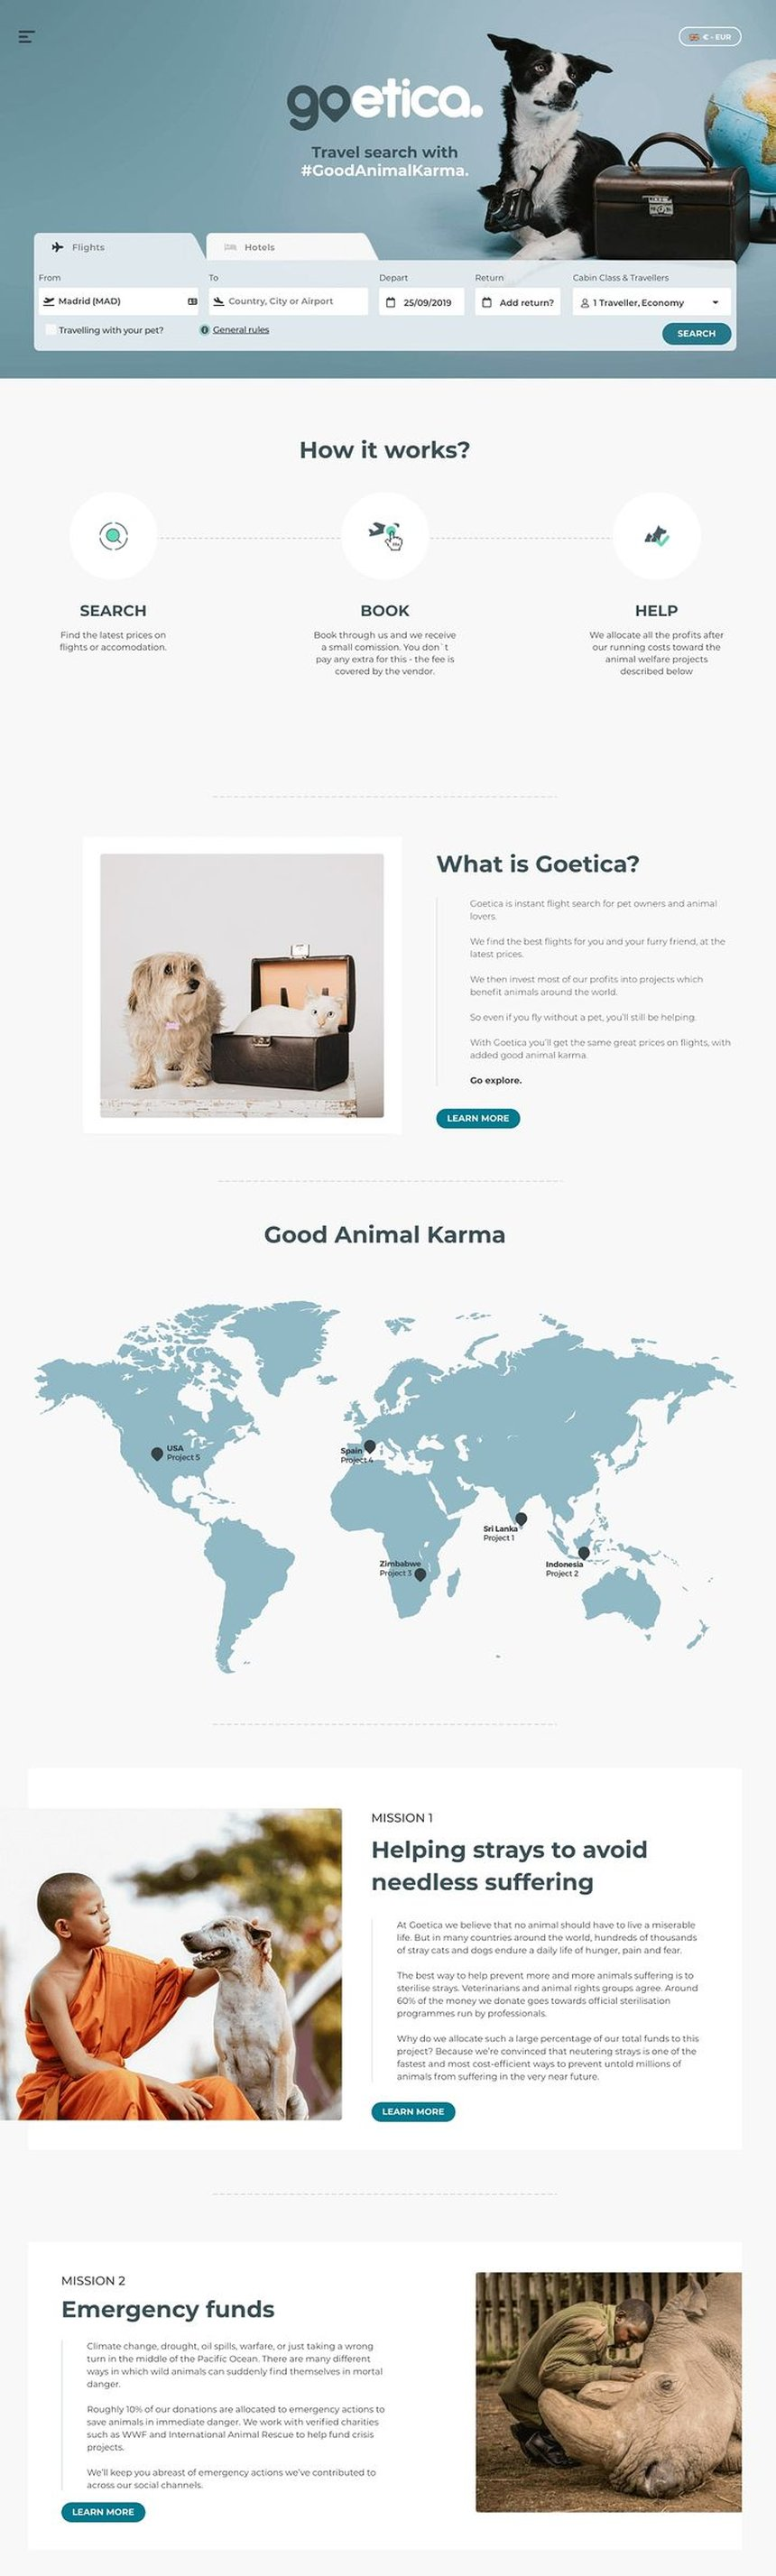 Goetica - Travel Search with #goodanimalkarma